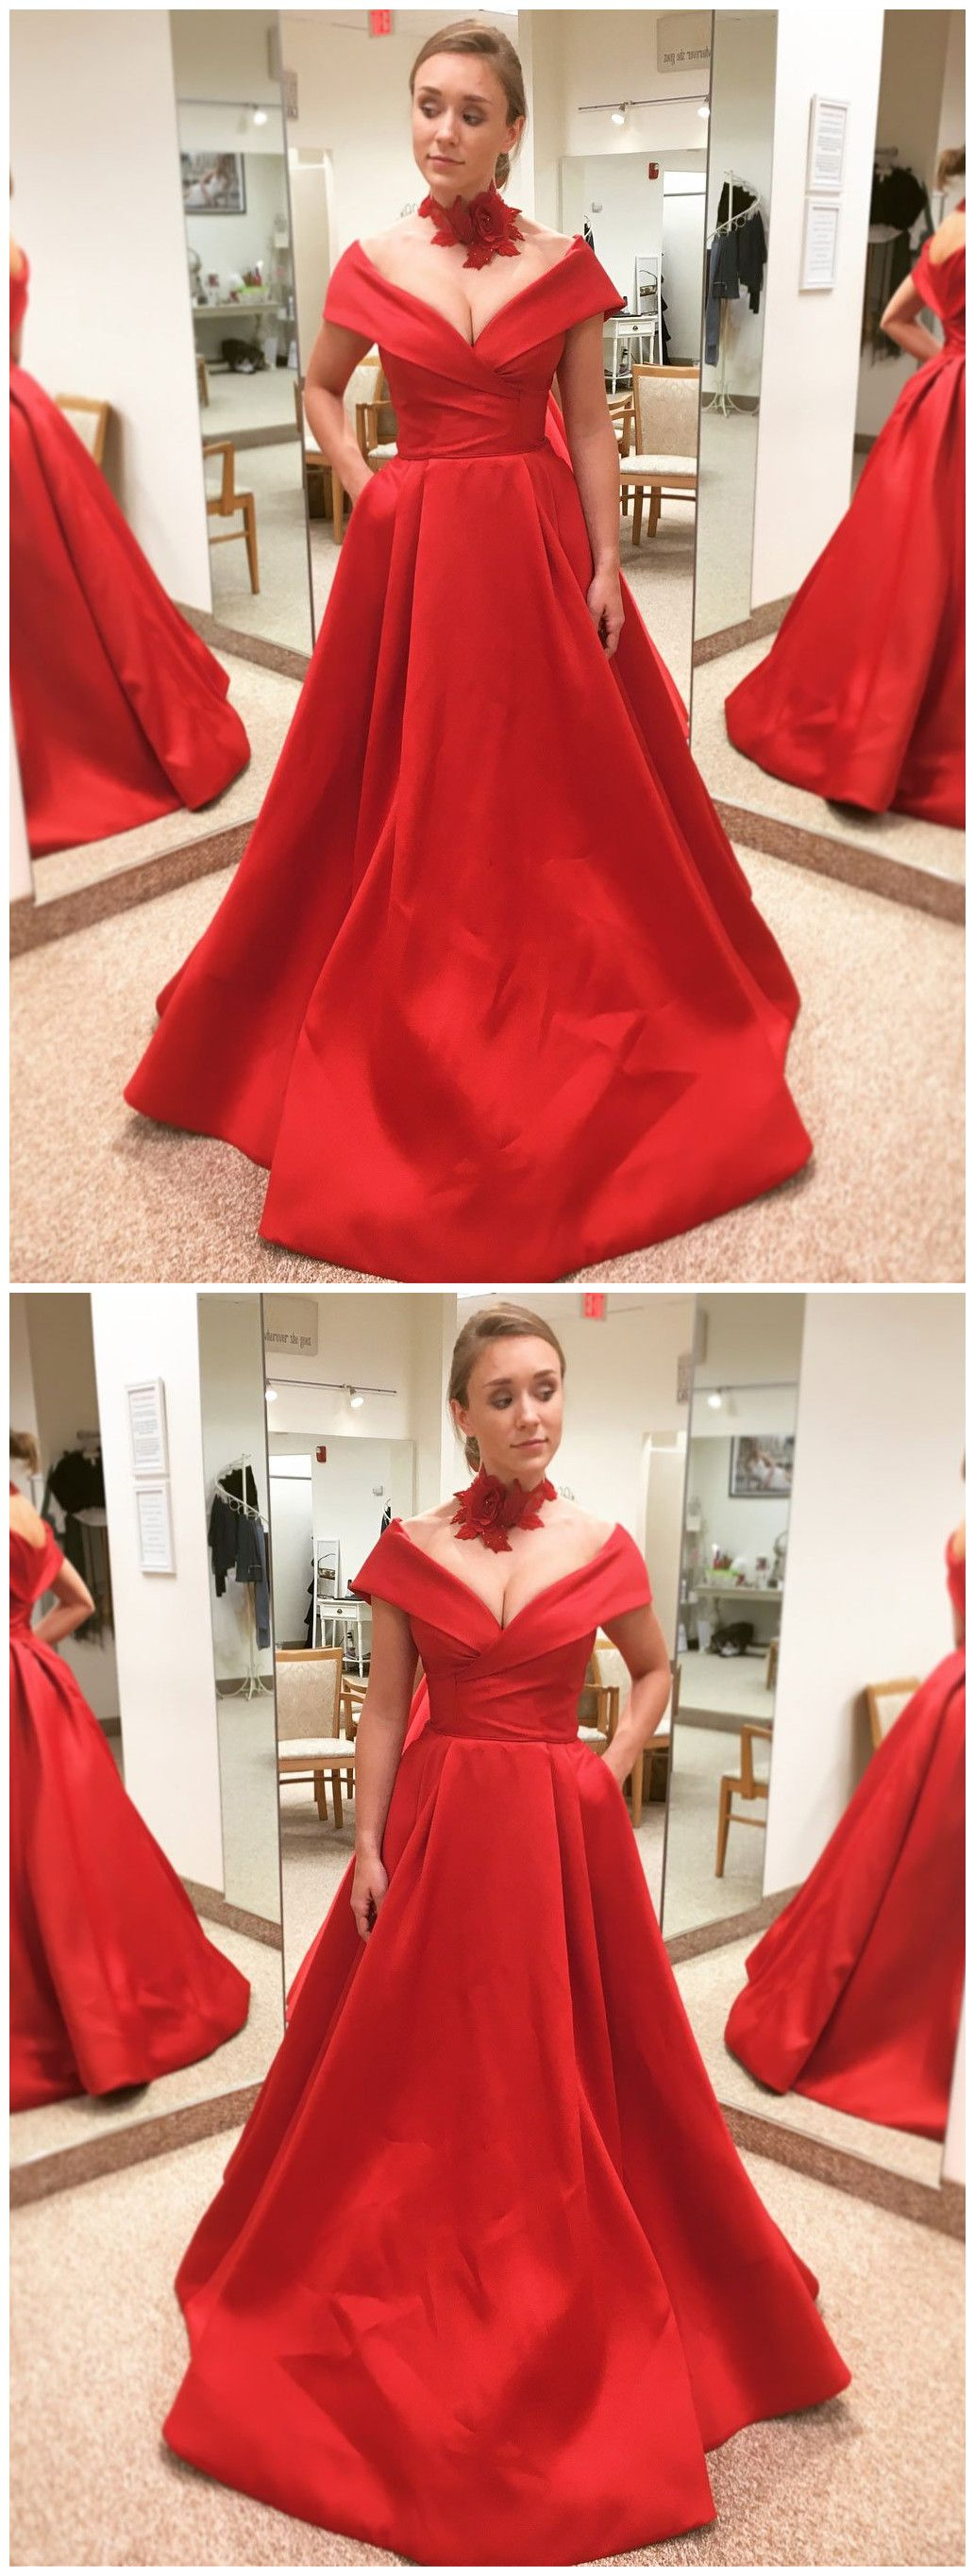 prom dress aline red offtheshoulder simple satin long prom